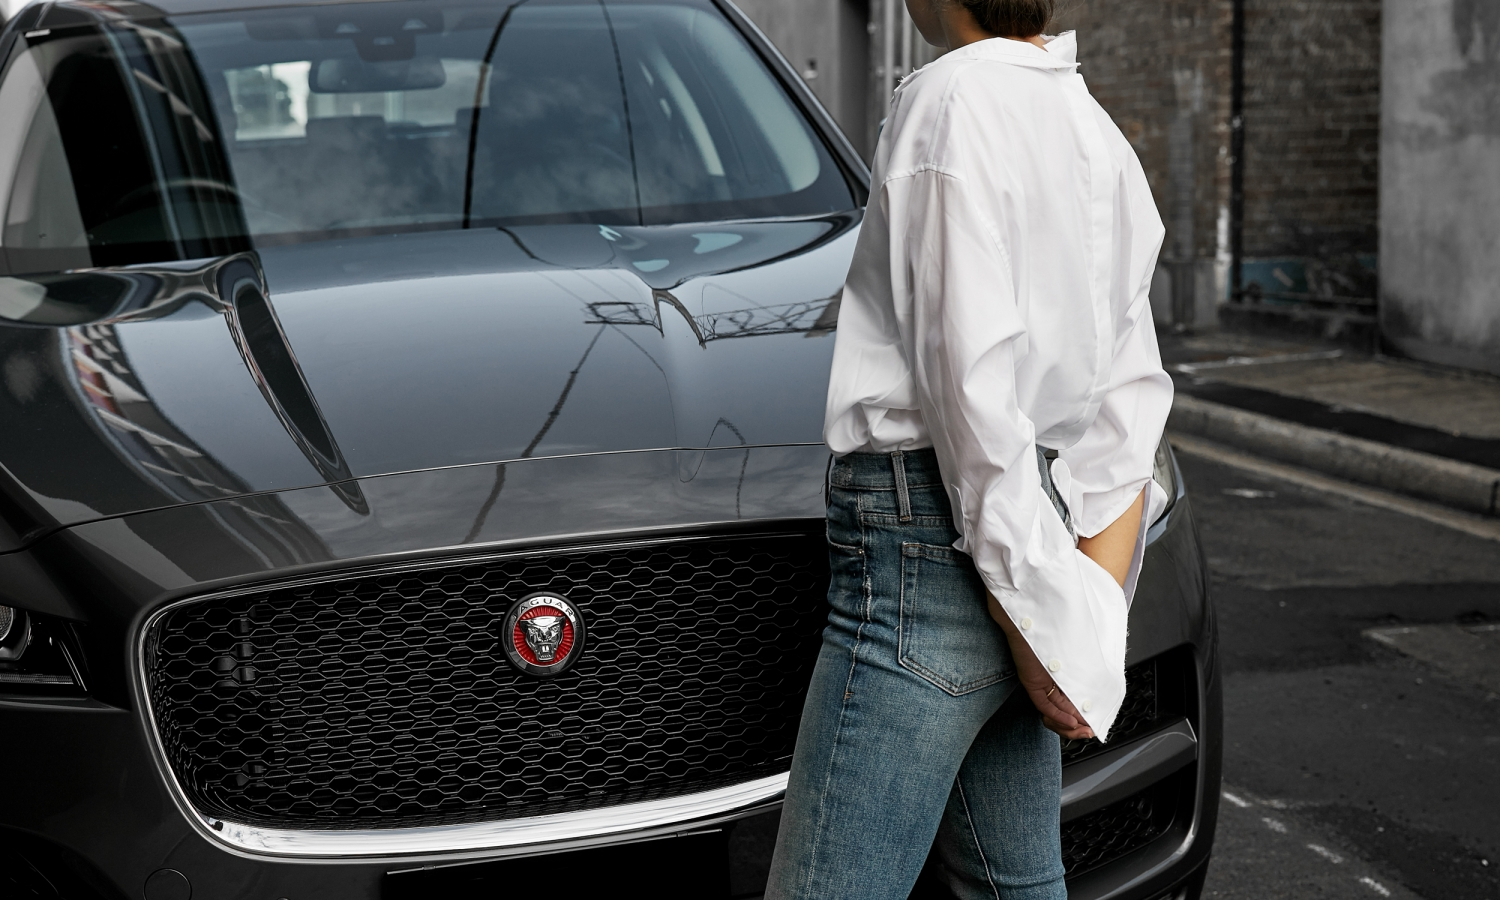 HarperandHarley_Jaguar_Fpace_What-do-you-keep-in-your-car-3